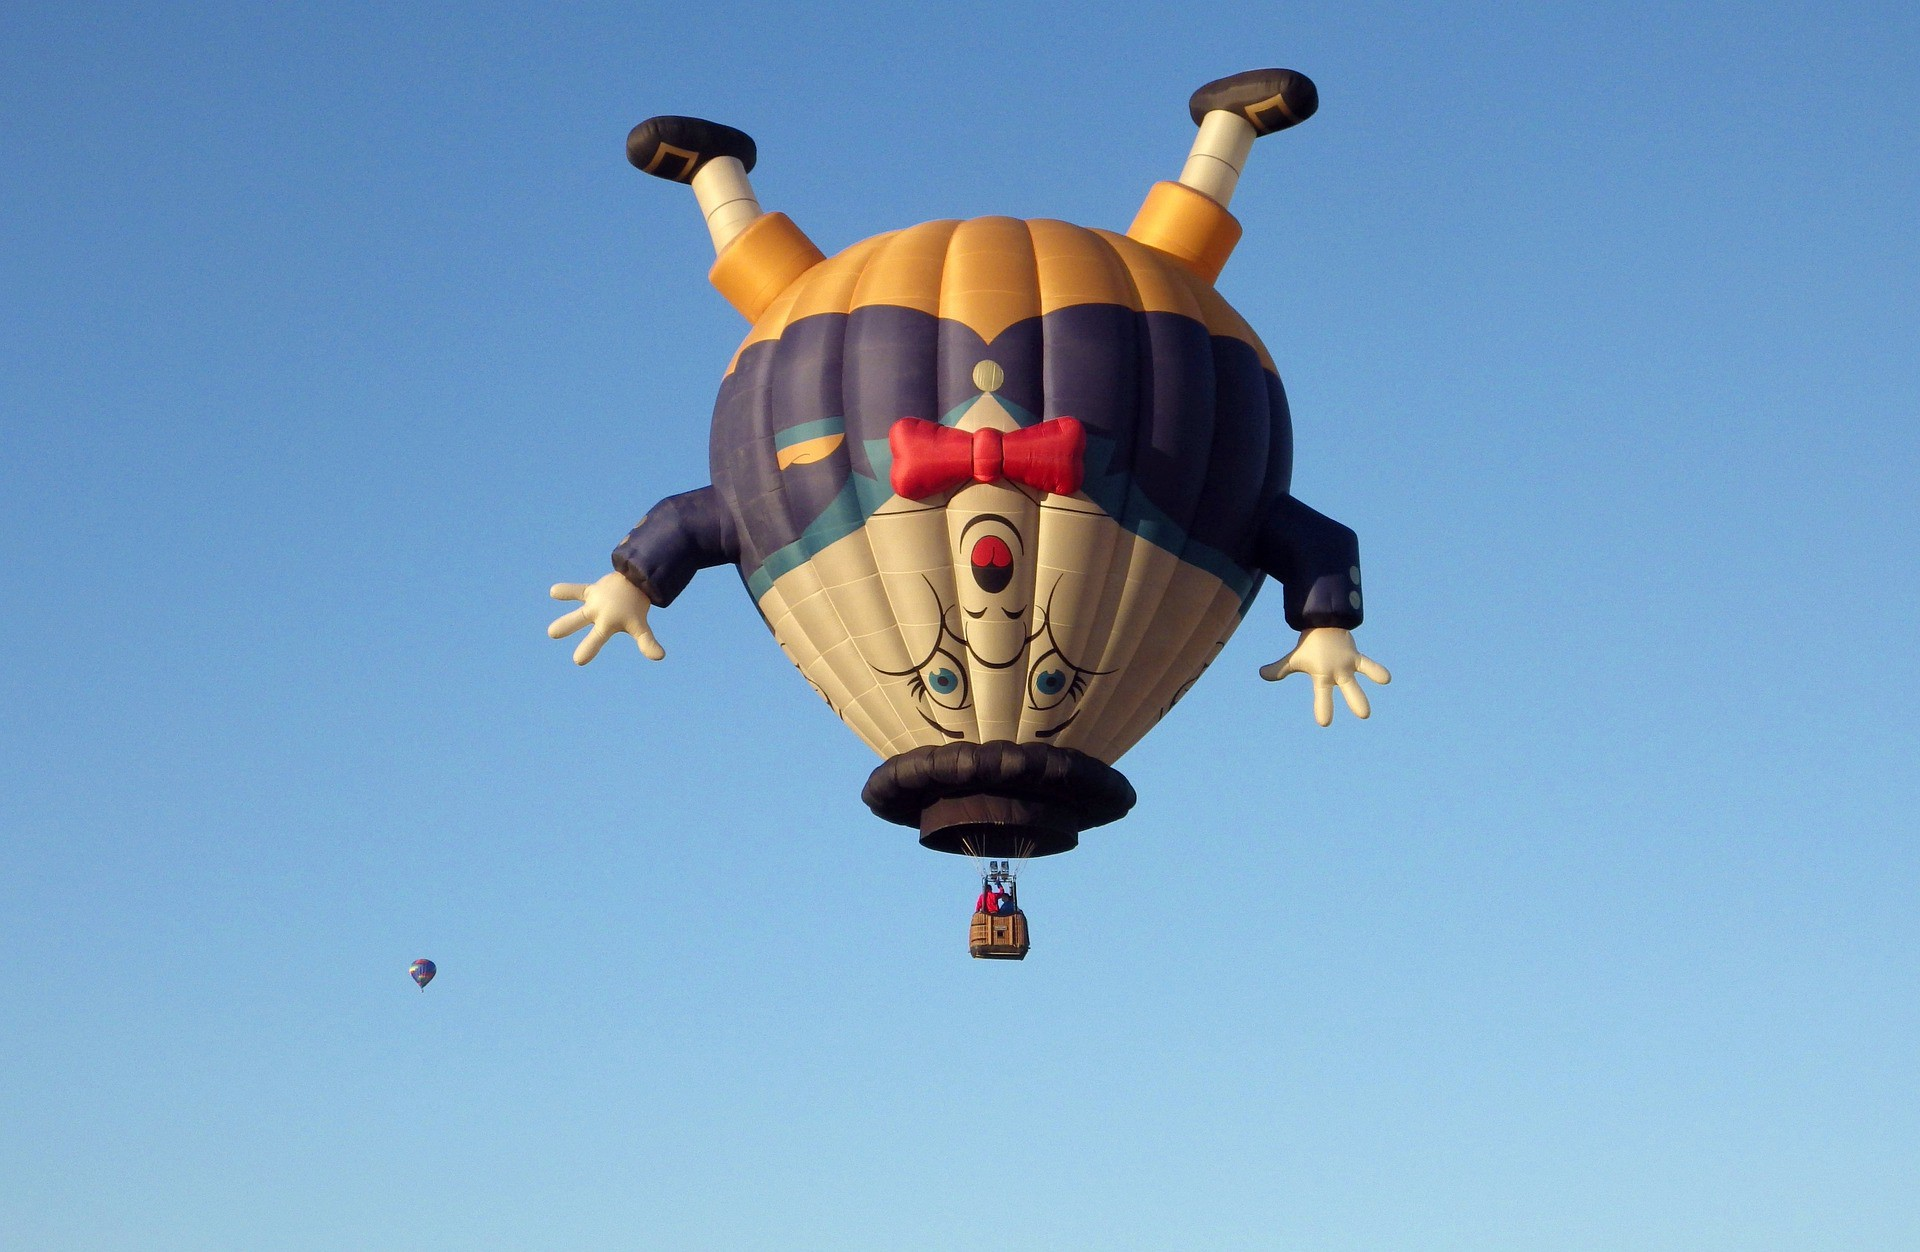 Humpty Dumpty hot-air balloon.